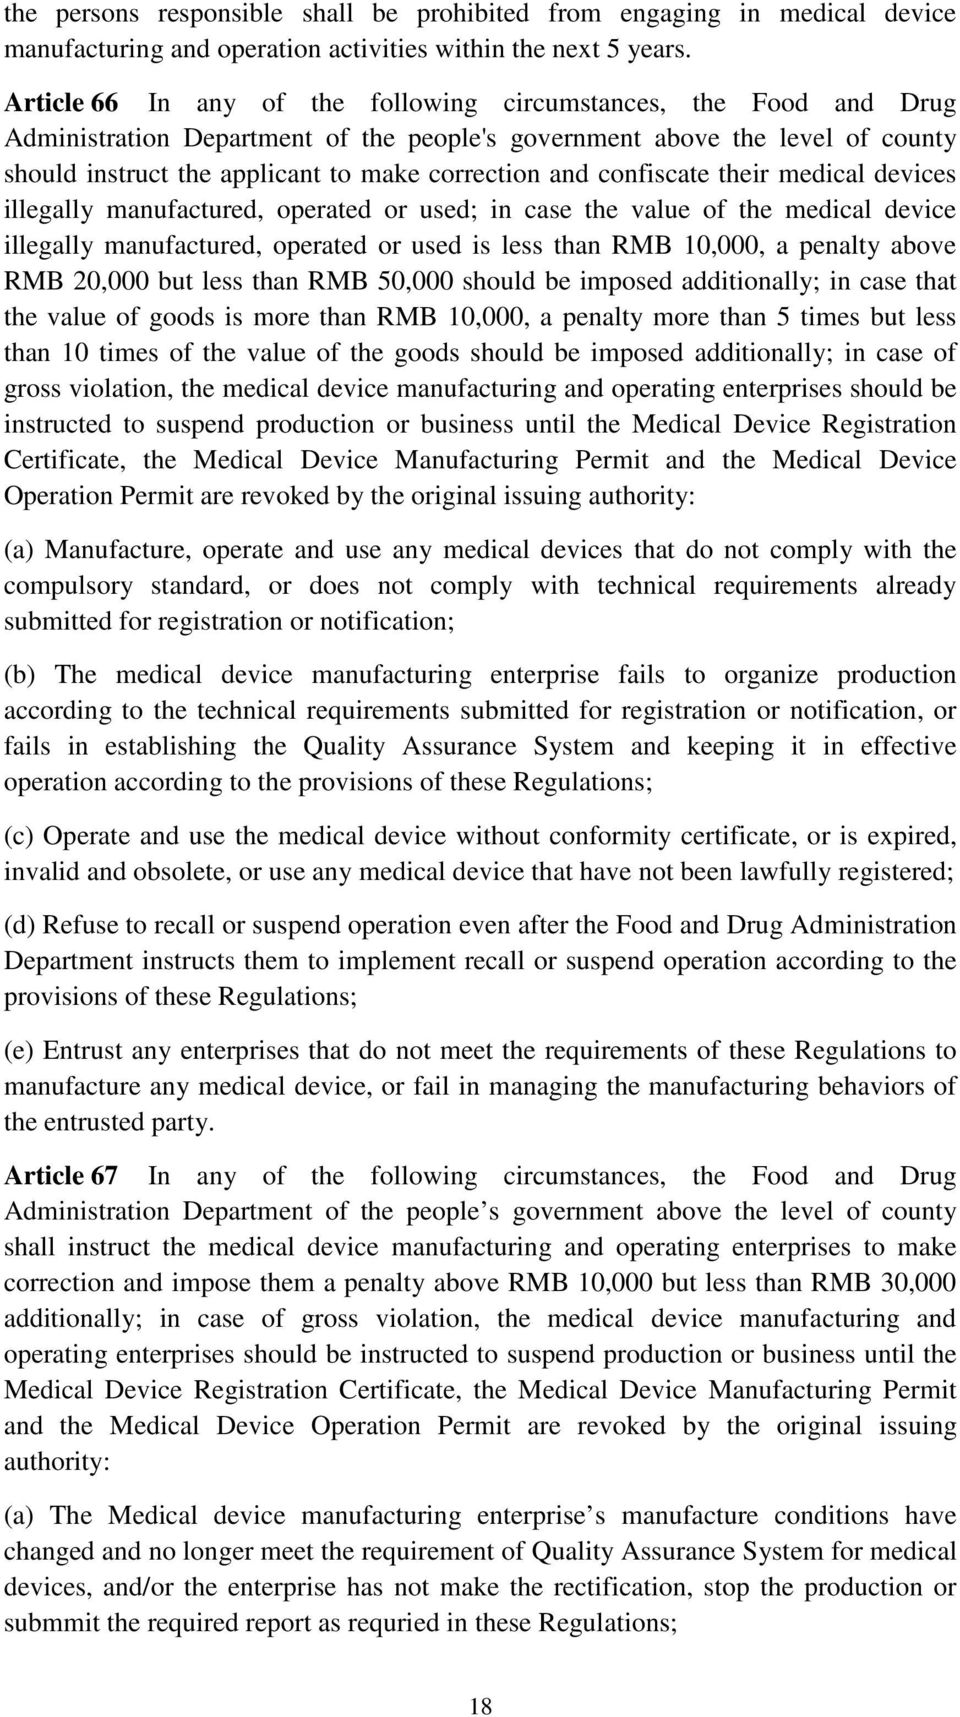 confiscate their medical devices illegally manufactured, operated or used; in case the value of the medical device illegally manufactured, operated or used is less than RMB 10,000, a penalty above